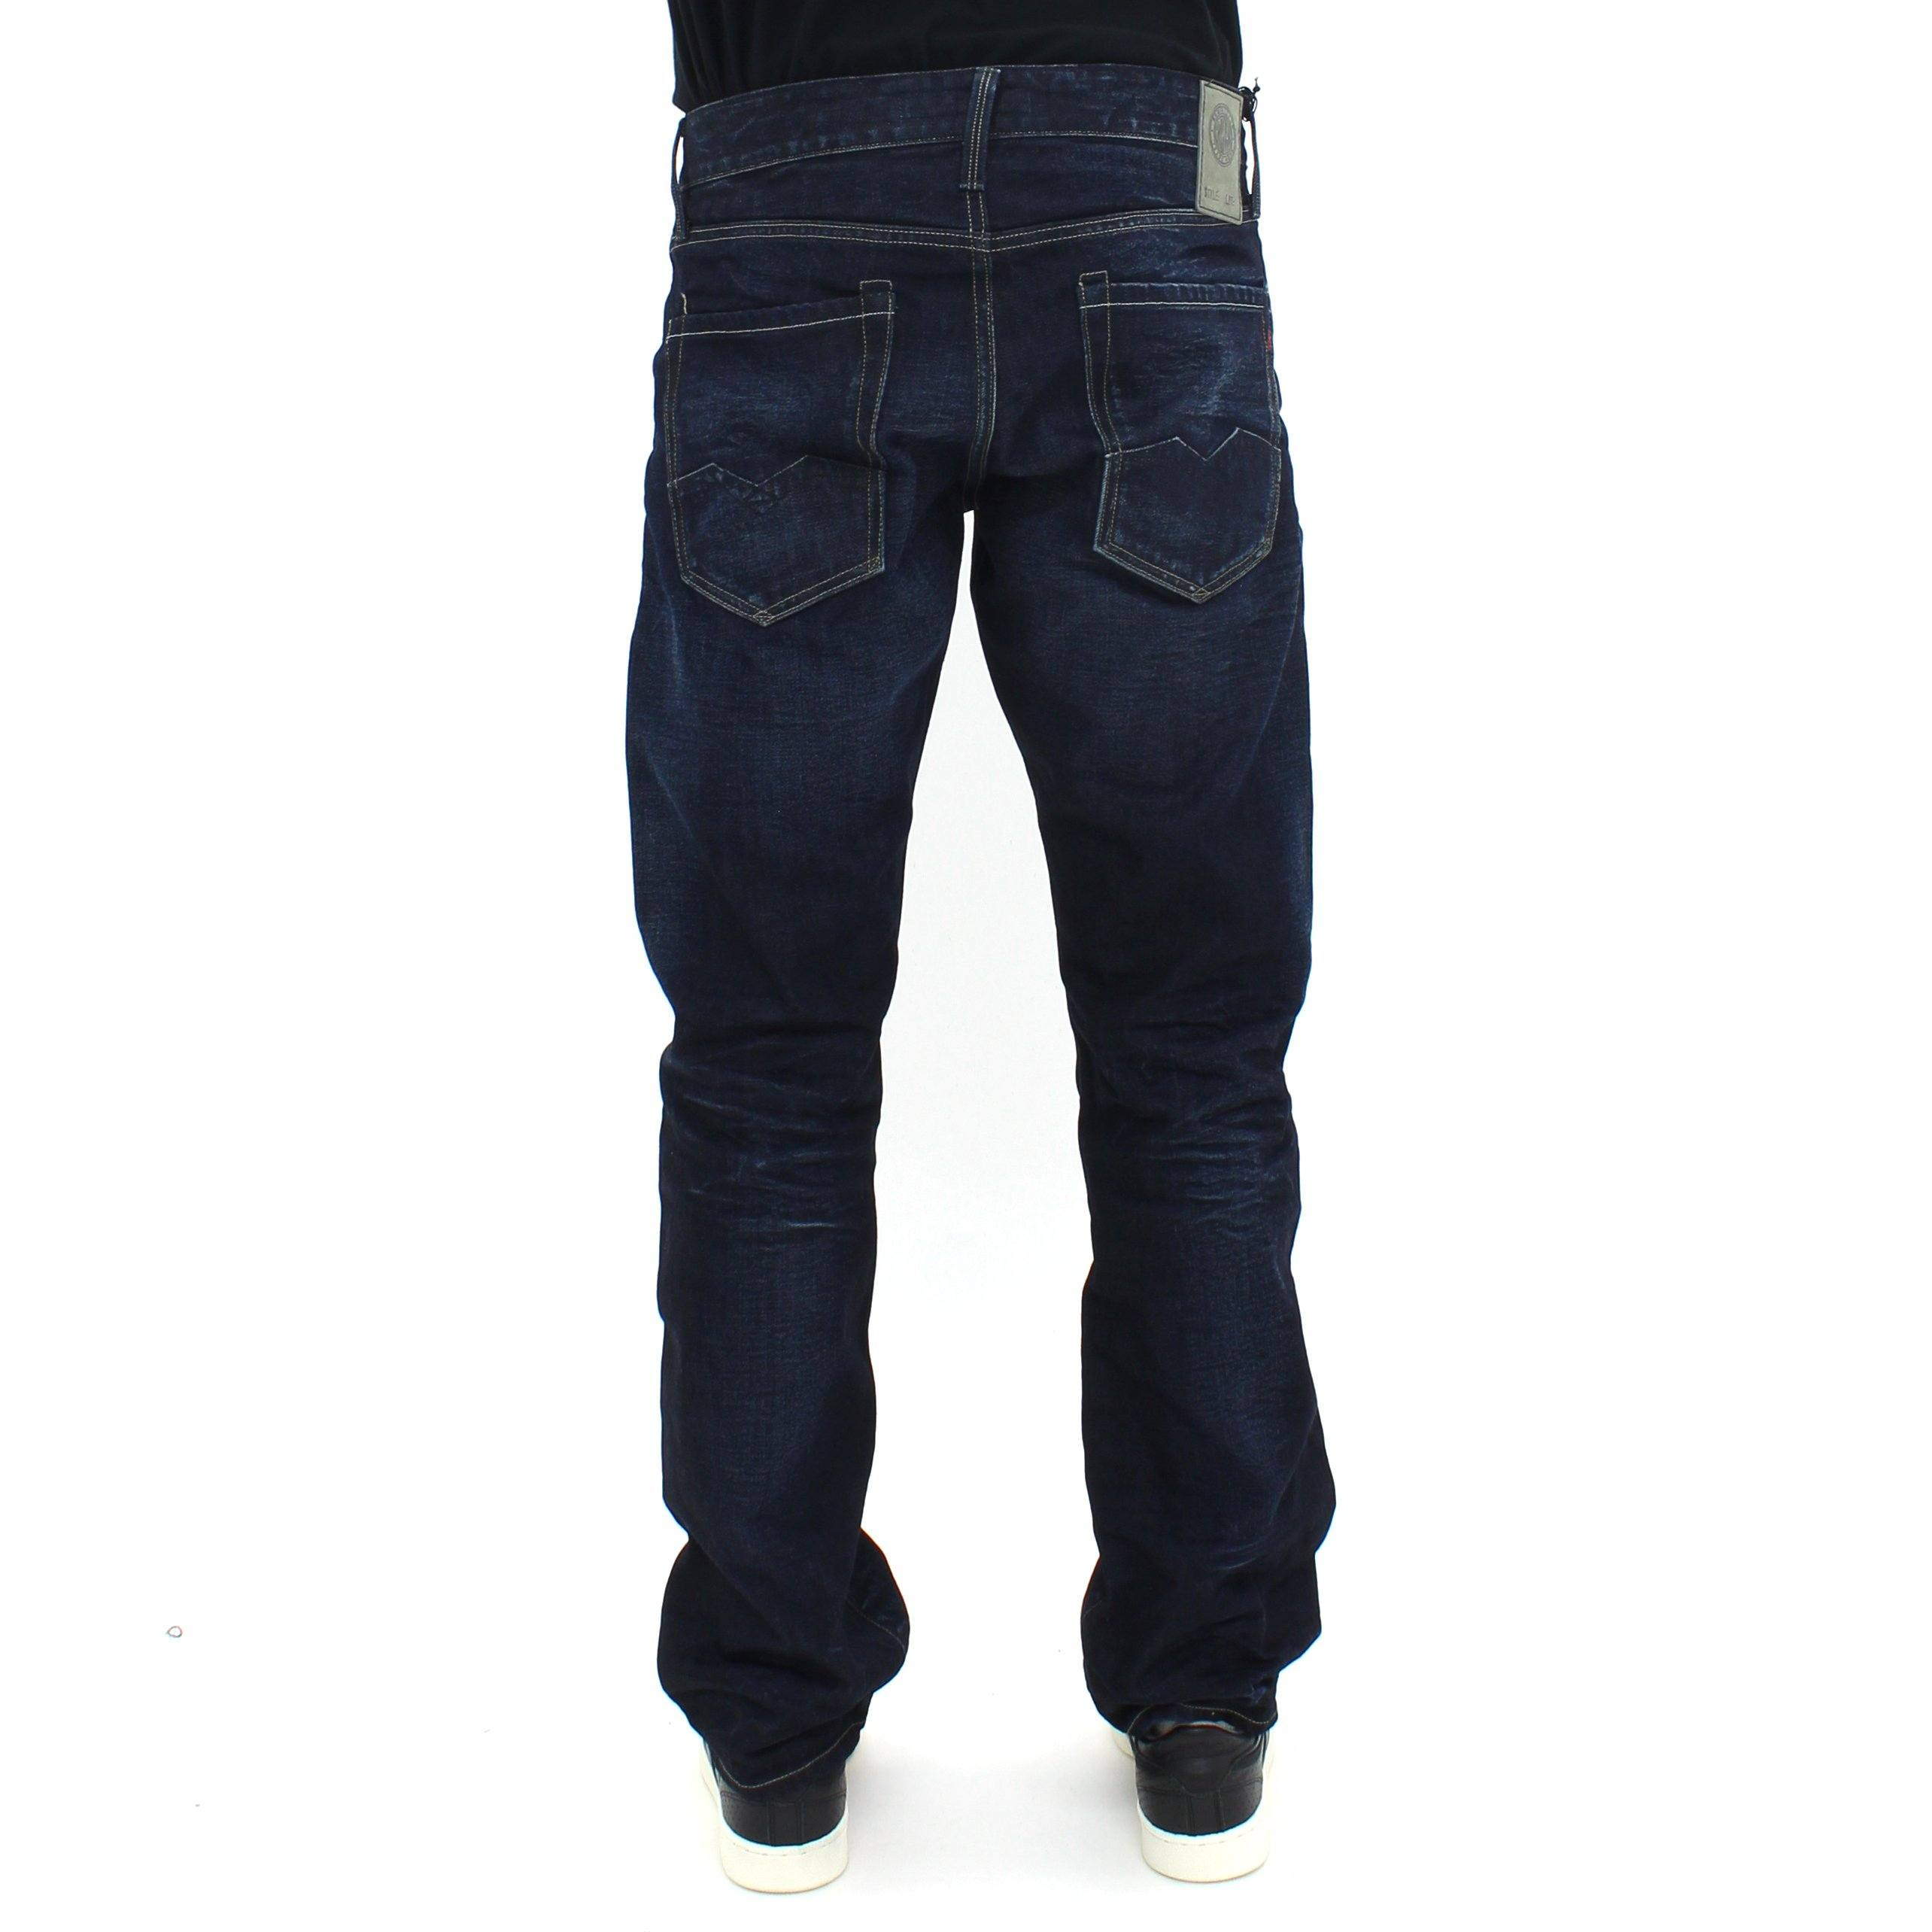 Replay Waitom 3D Whisker Dark Jean Denim